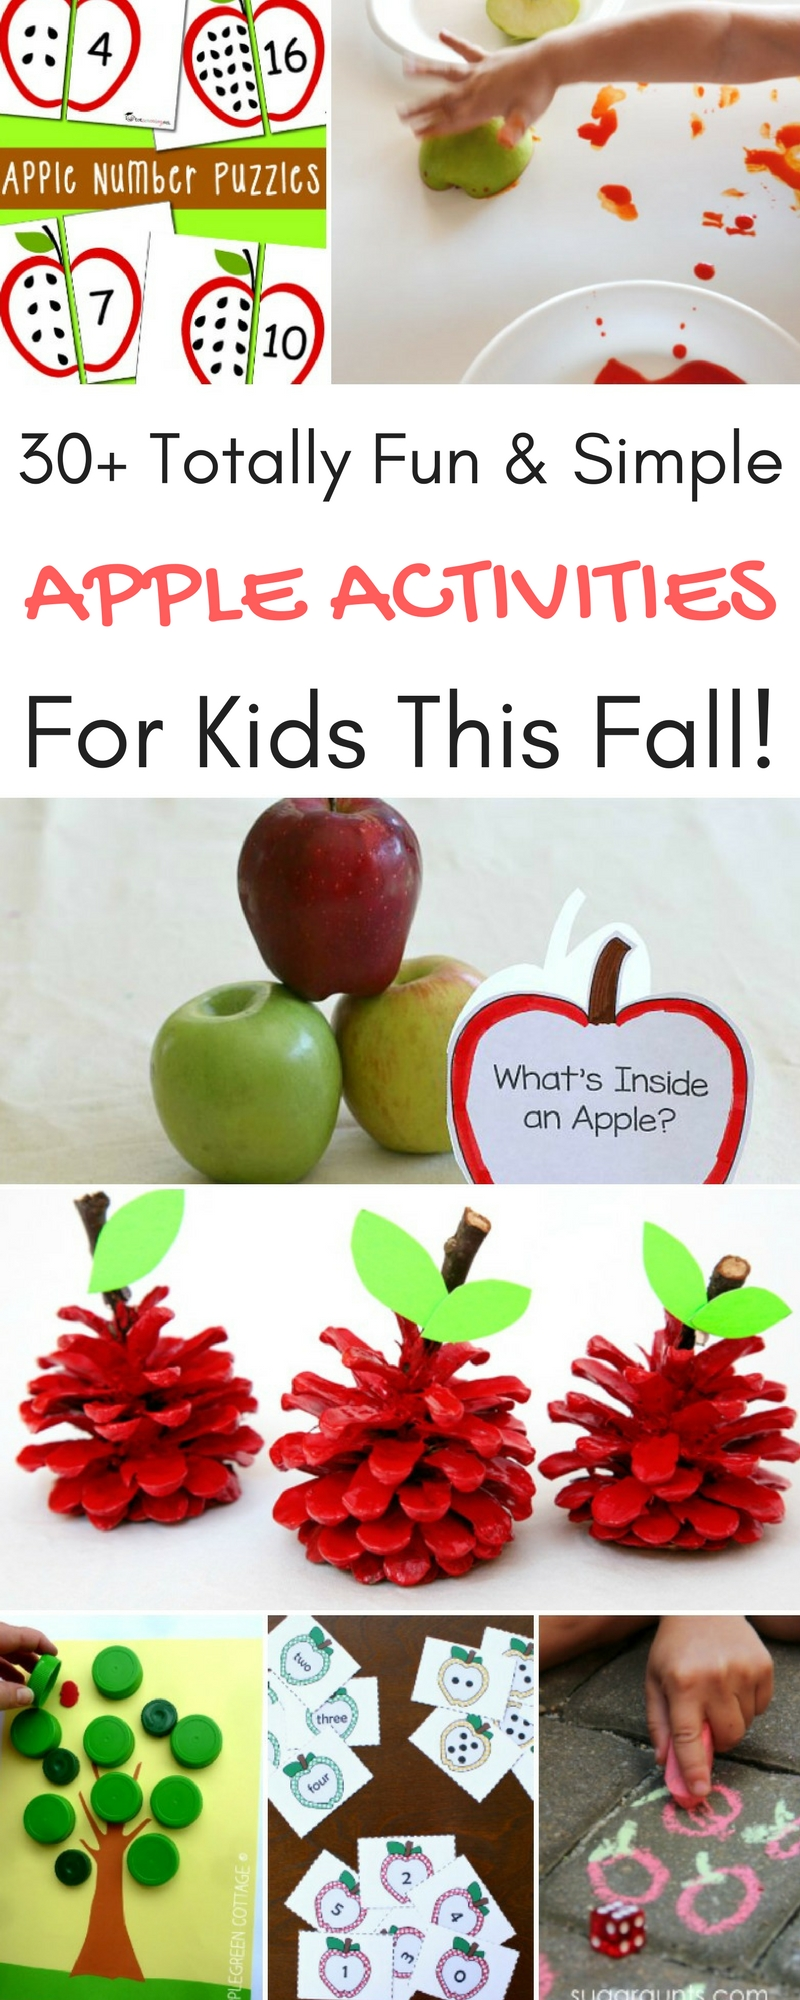 30+ Totally Fun & Simple Apple Activities for Kids This Fall